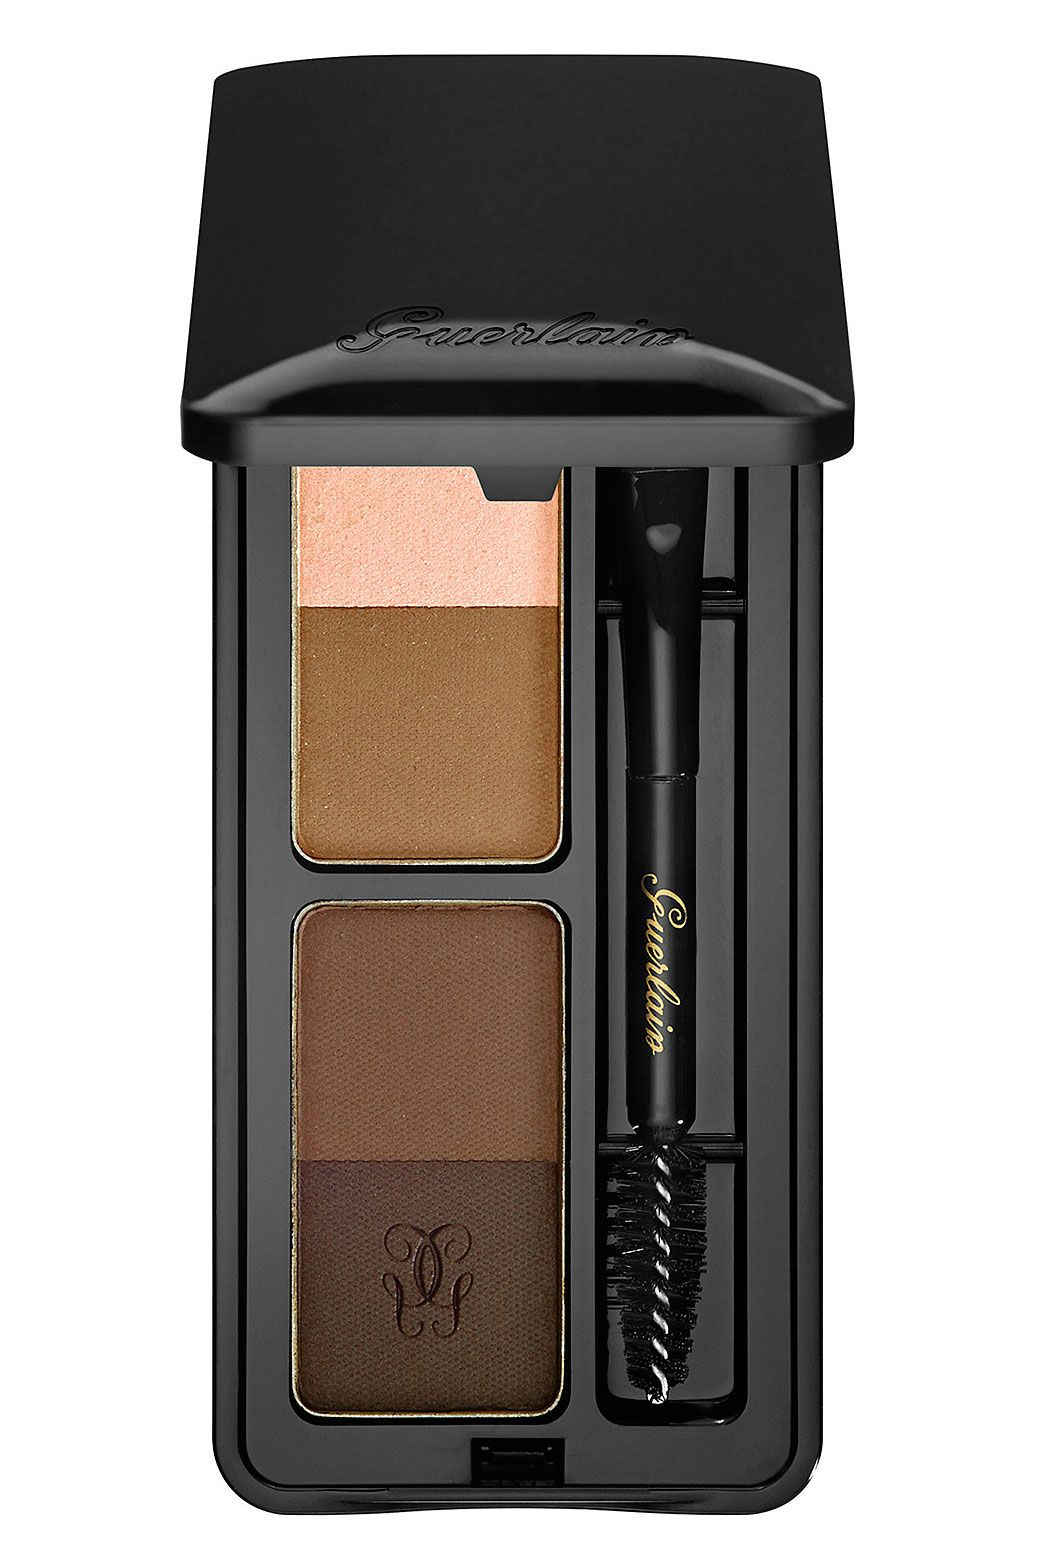 10 Best Eyebrow Kits Brow Makeup Palettes For Bold Arches